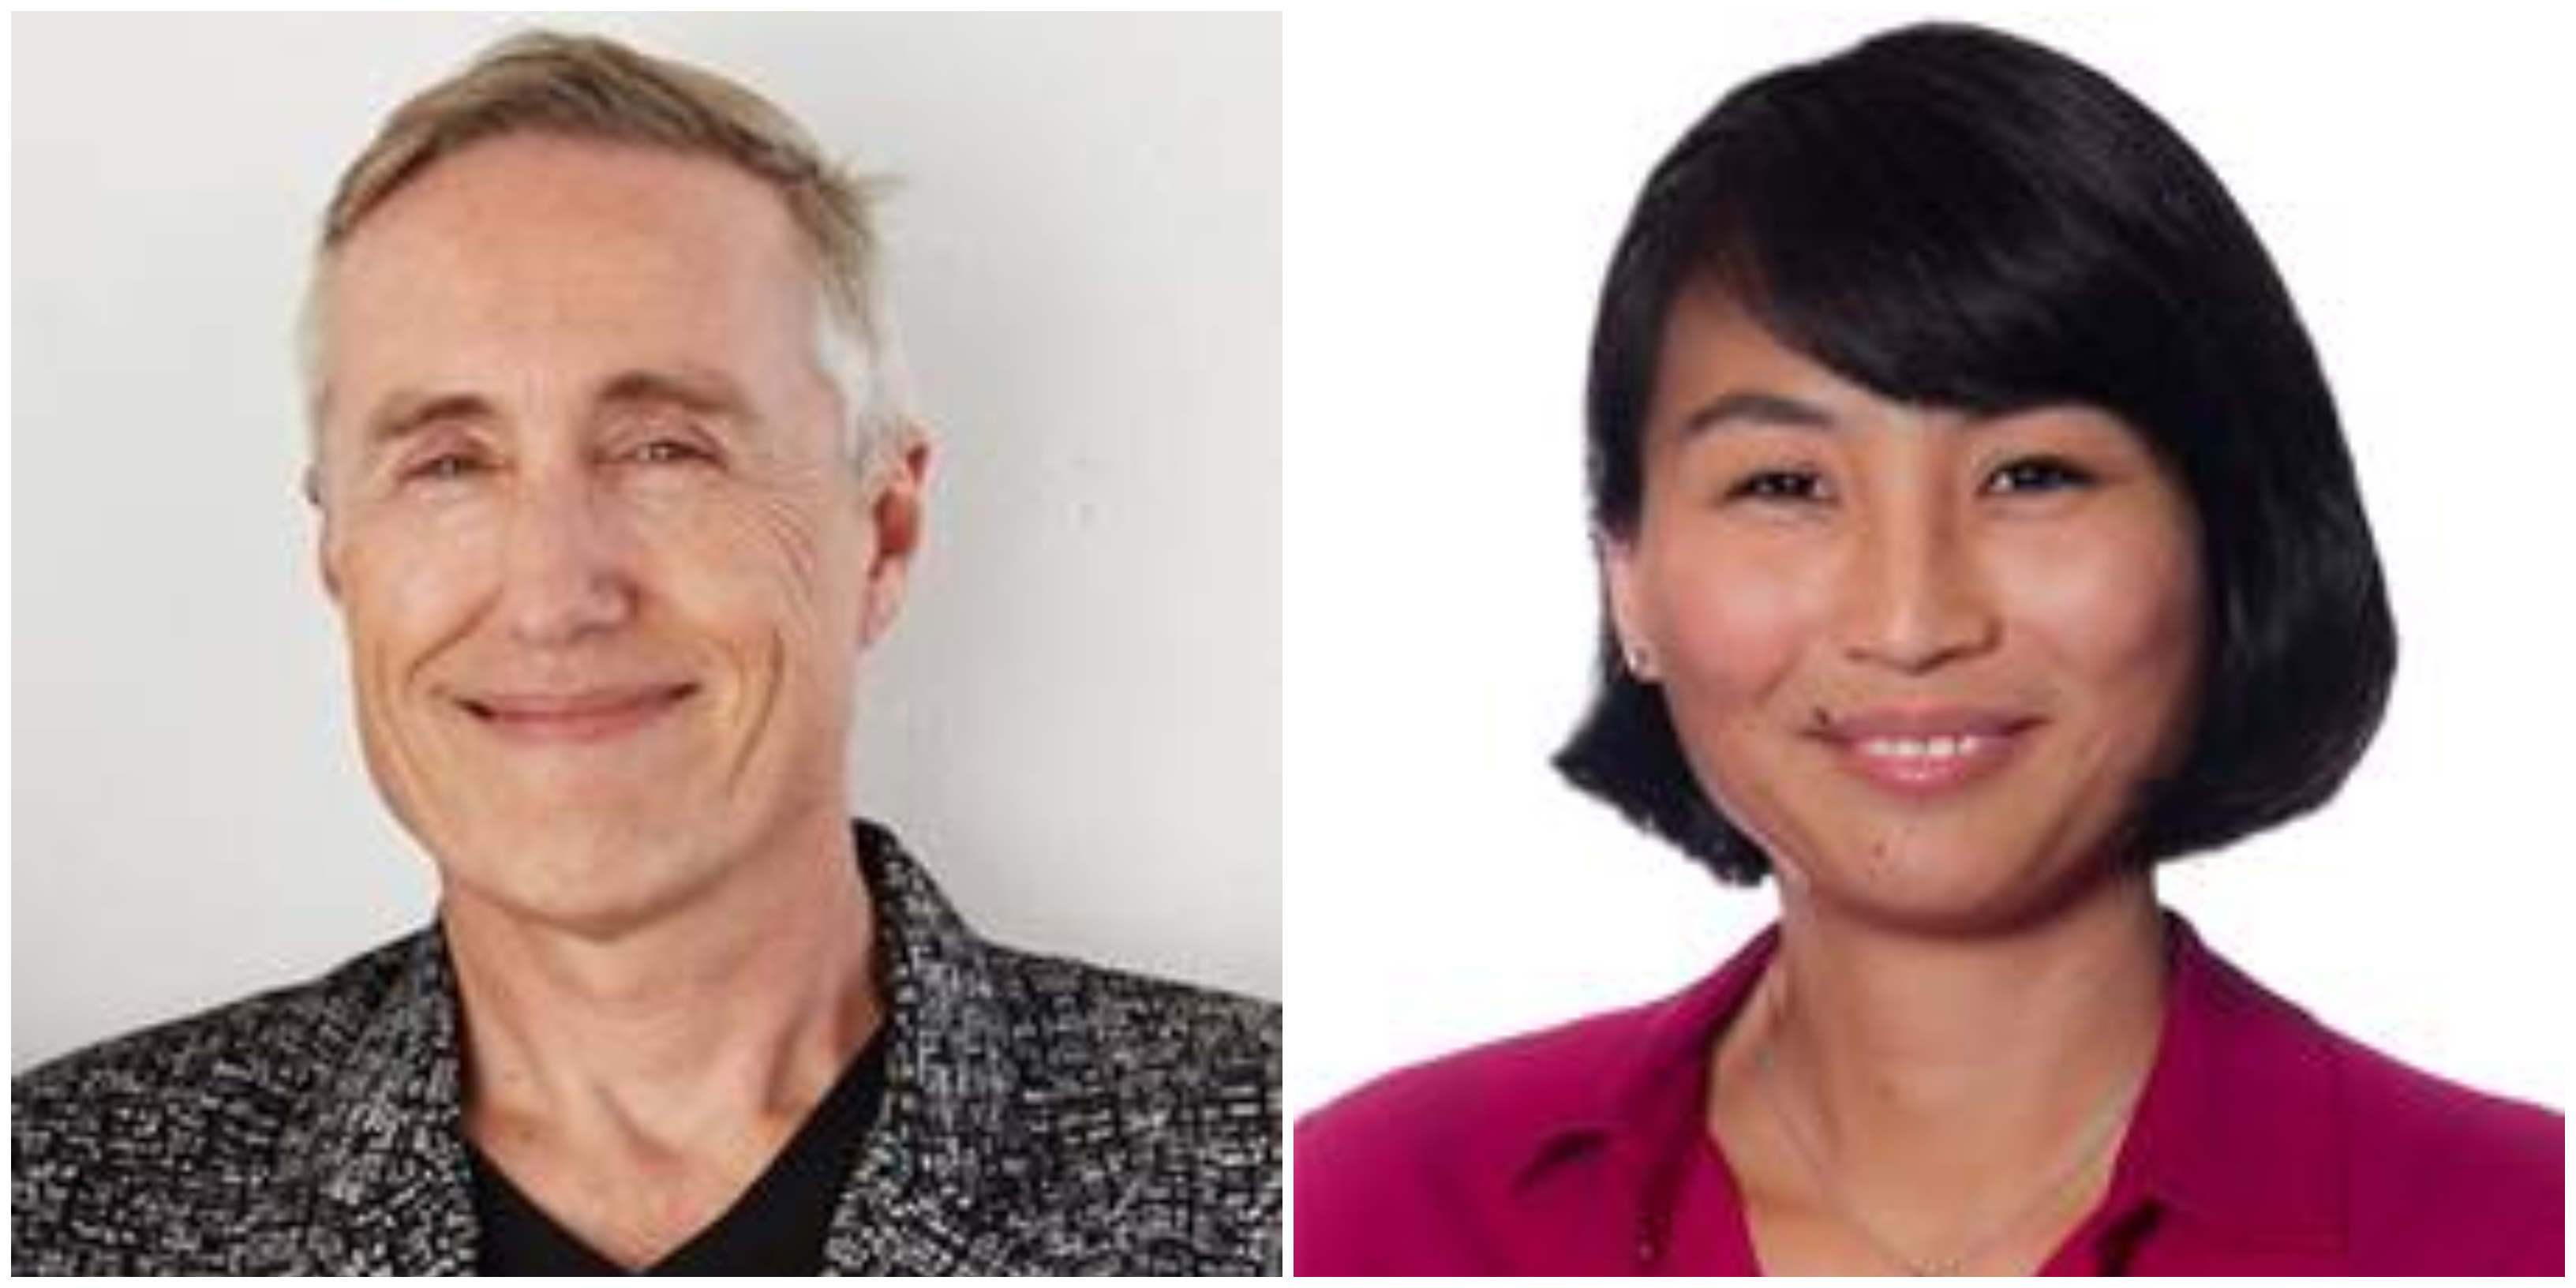 BC&F Dentsu's Daniel Barnes and Mindshare Singapore's Melissa Tang to head APAC Effies 2020 Awards juries